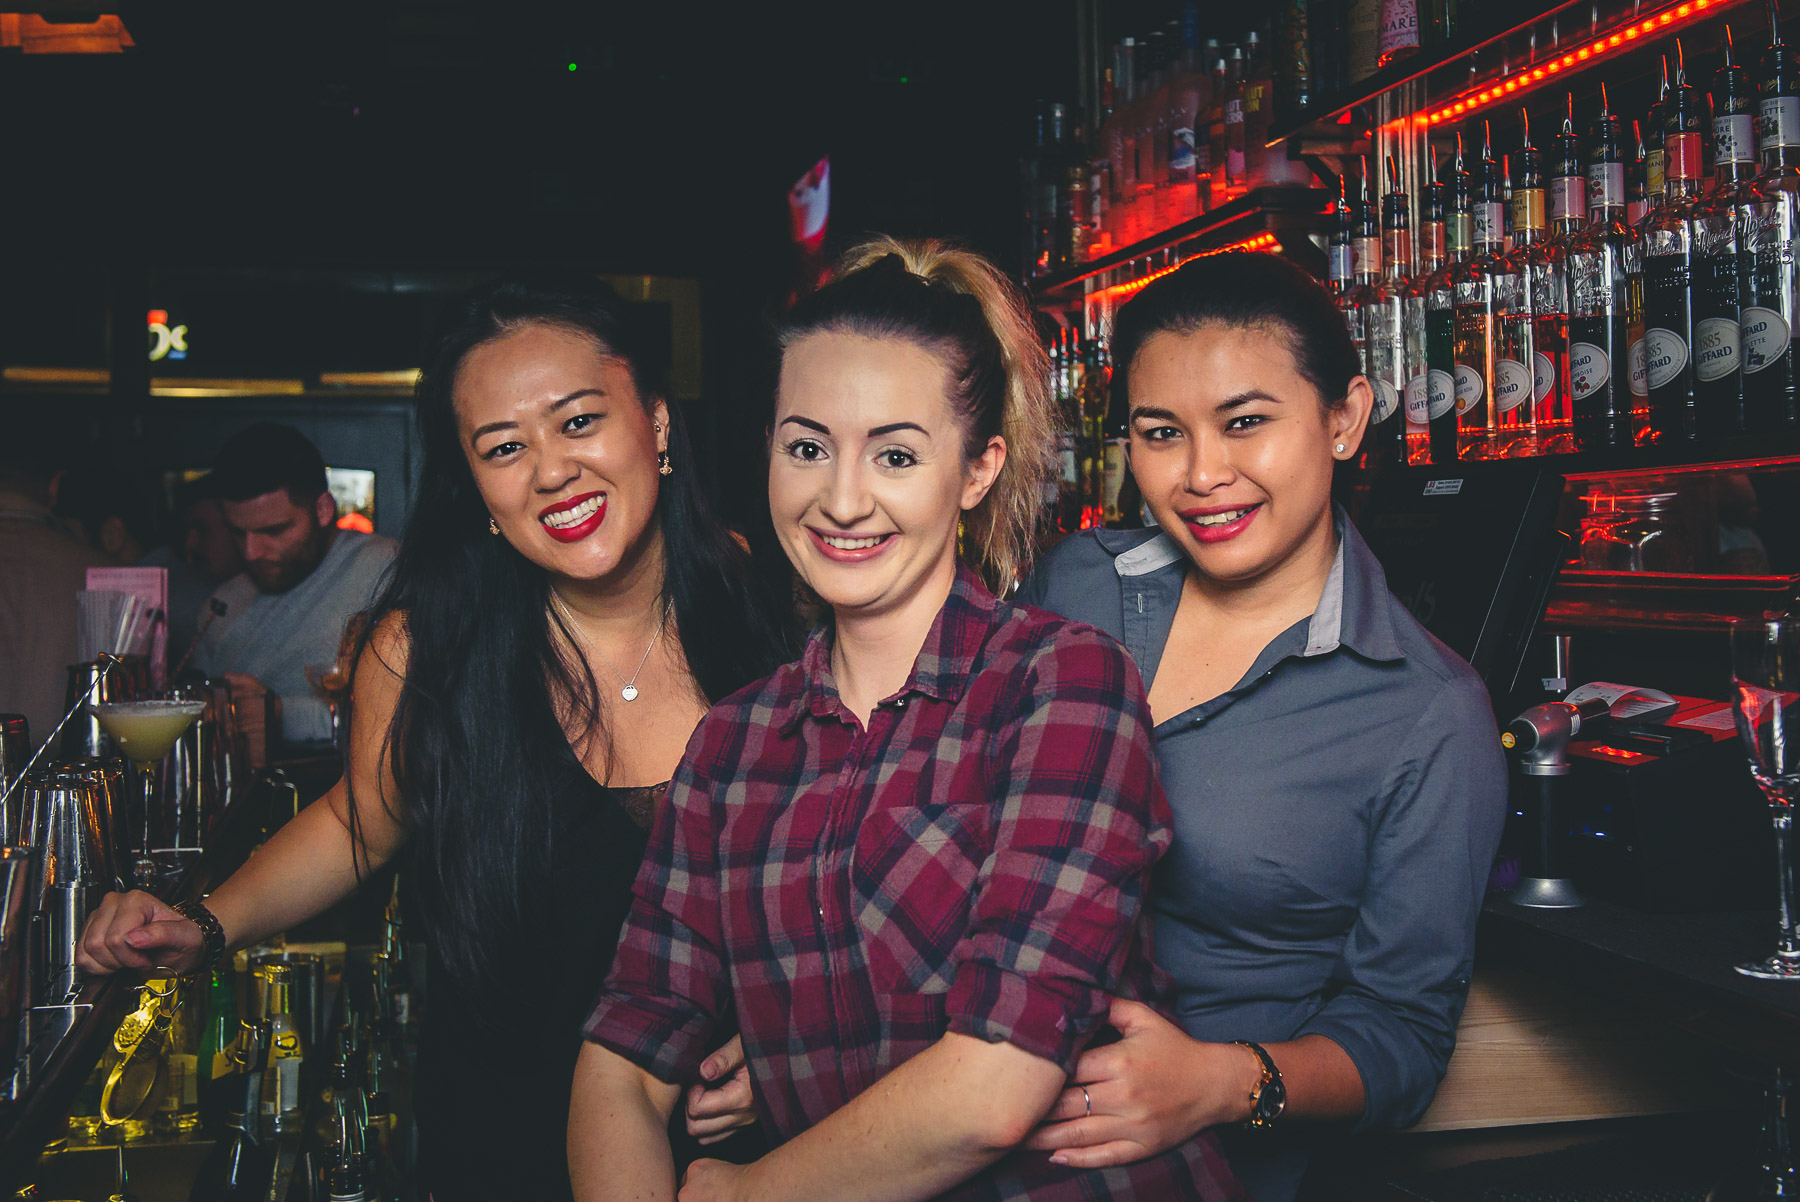 Angels cocktail bar Oxford_24.11.2018_907.jpg